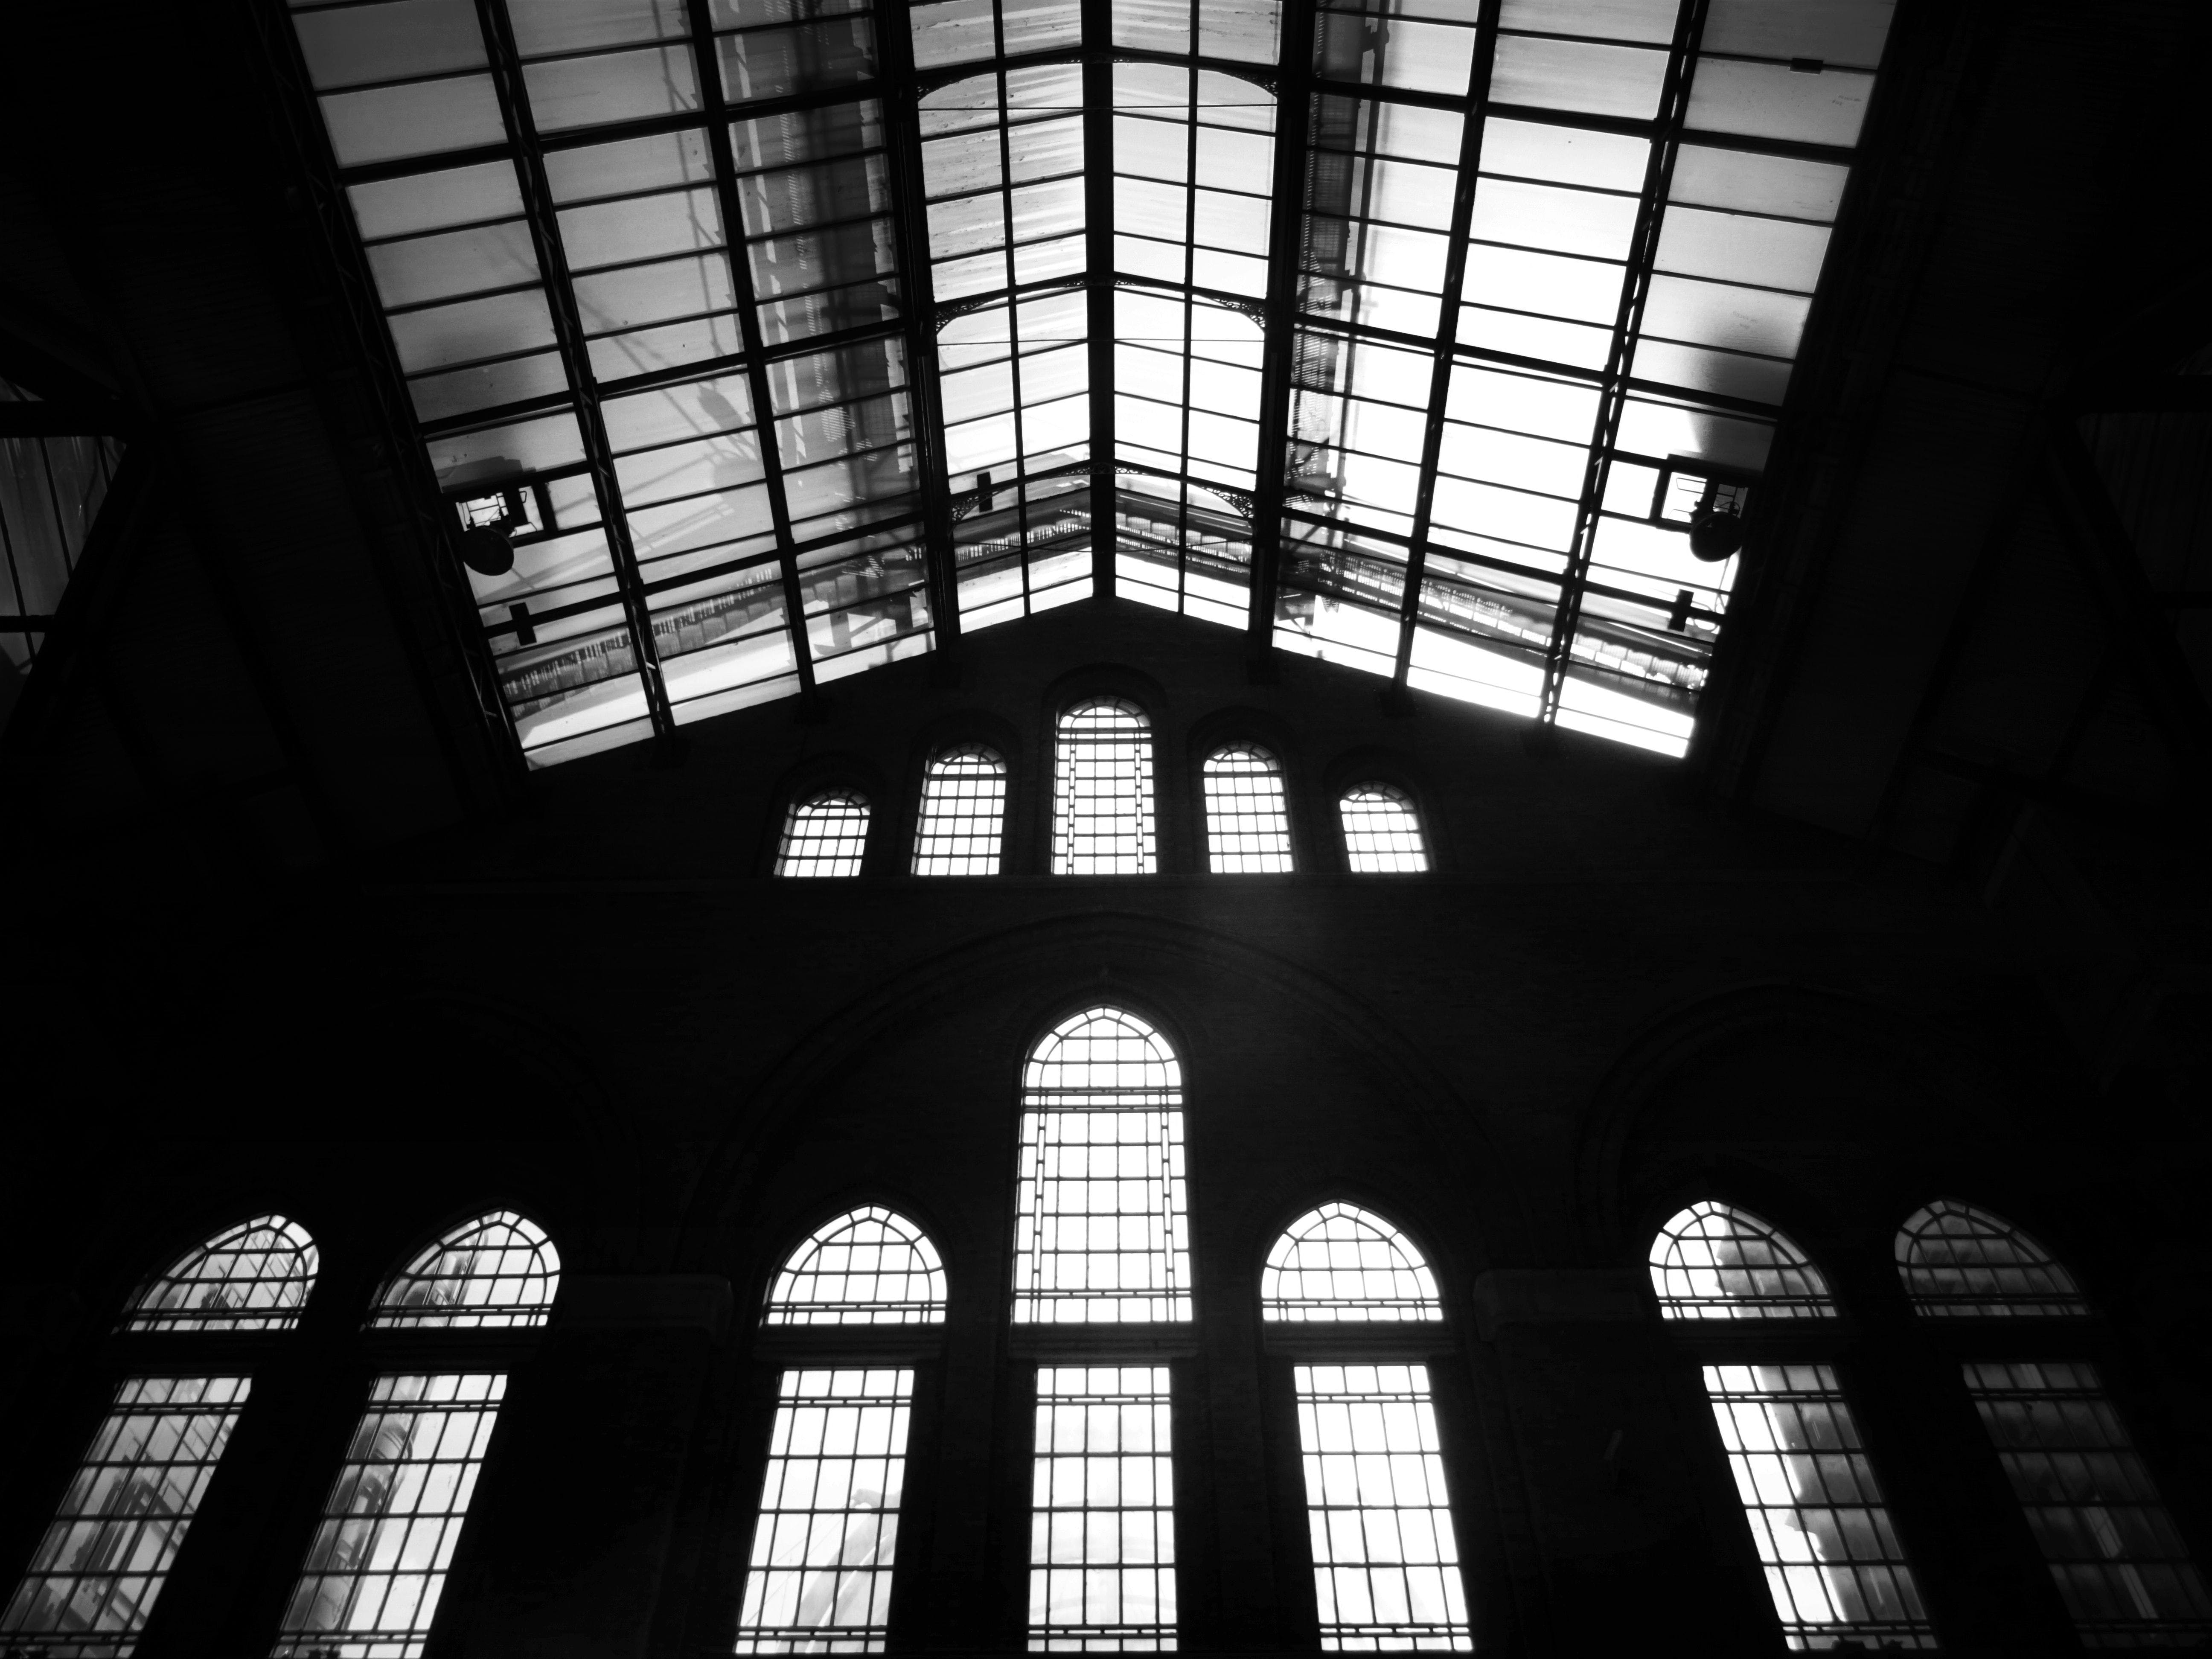 Grayscale Photography of Building Interior